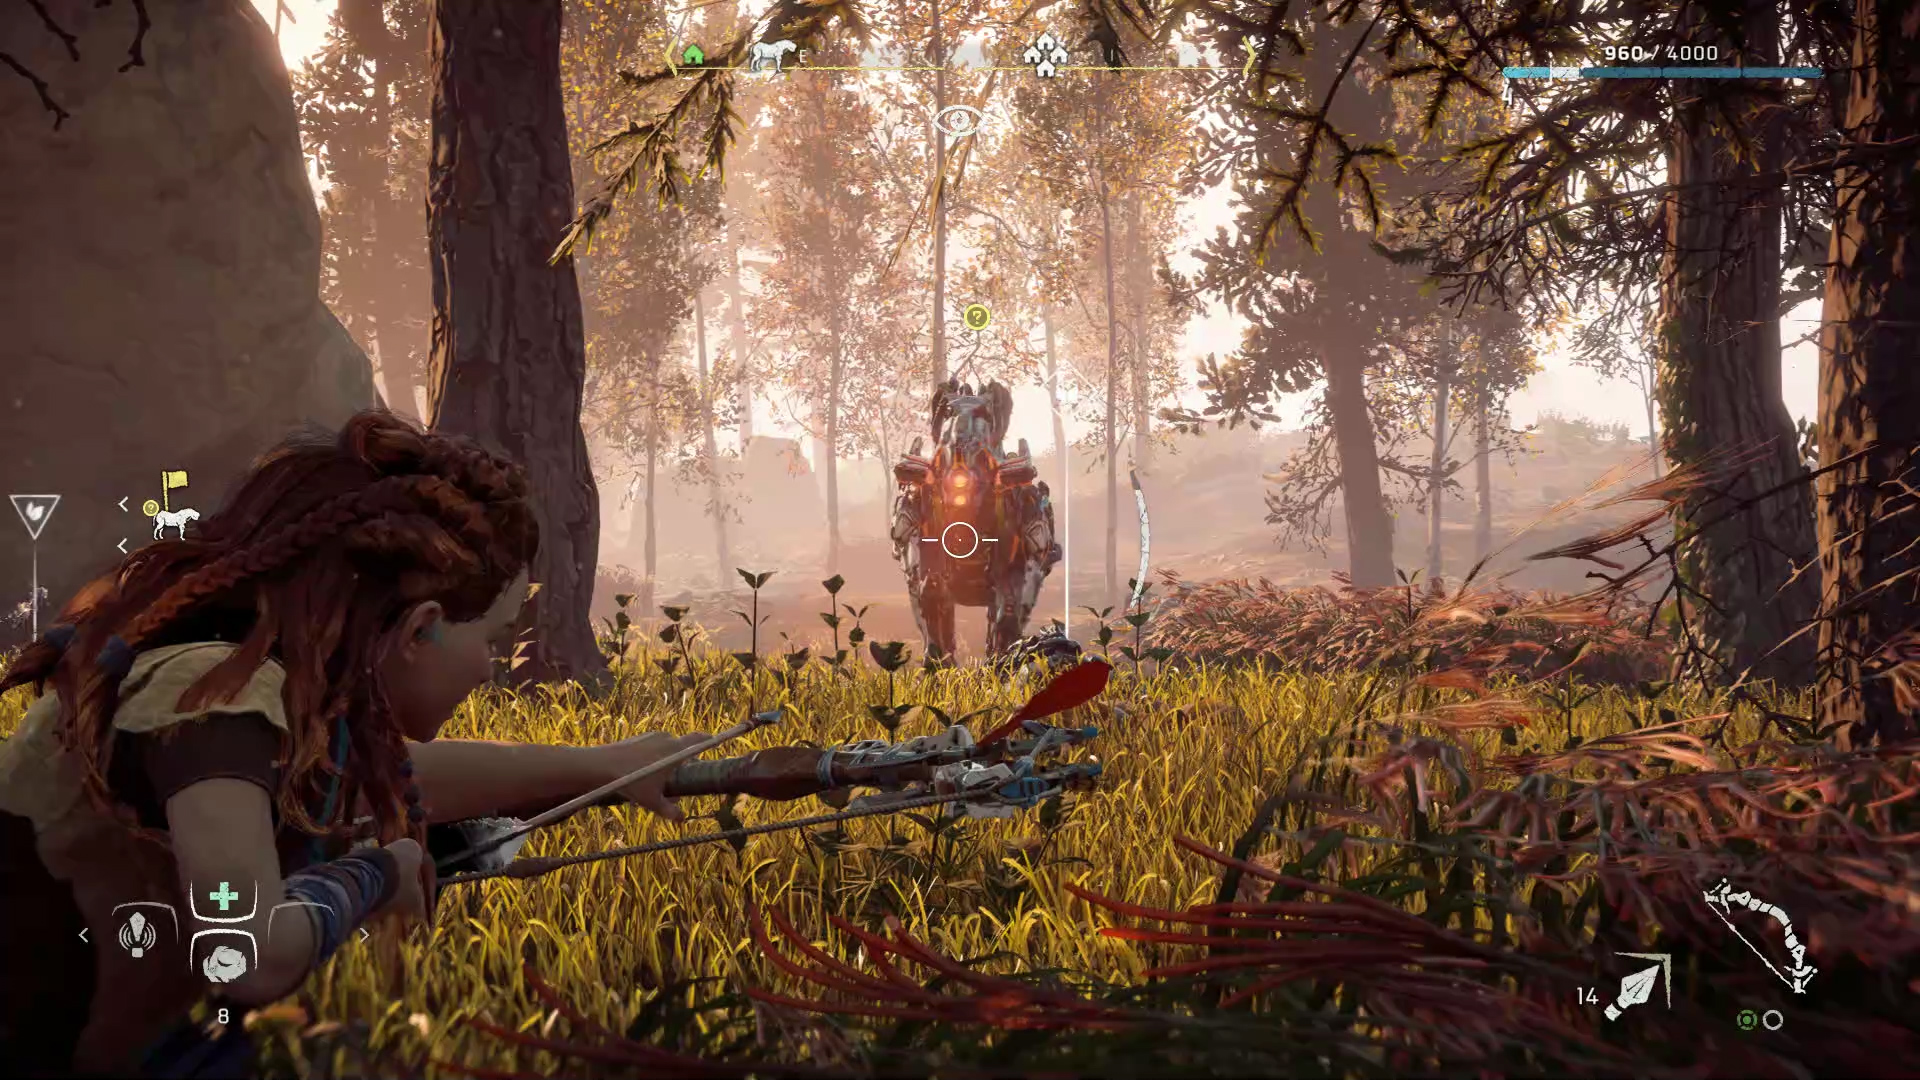 A screenshot from Horizon Zero Dawn: Complete Edition on PC